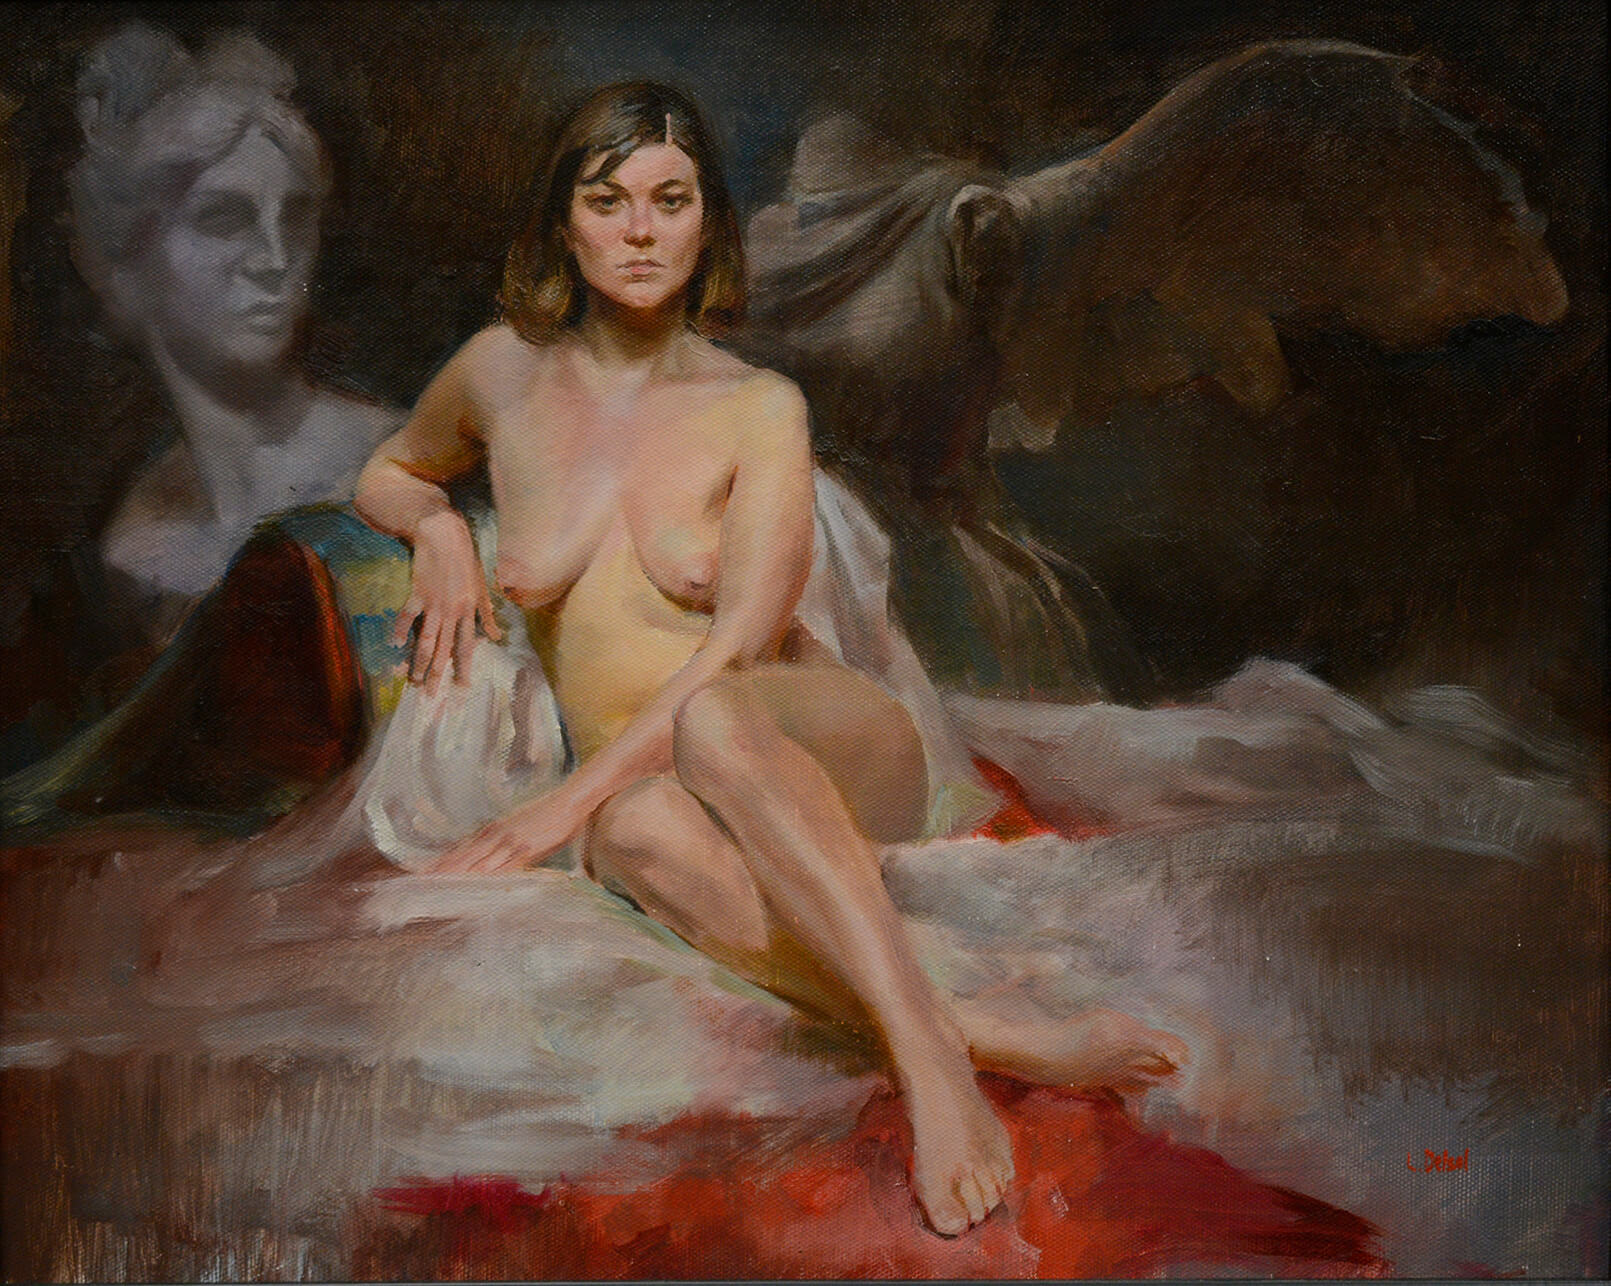 Realistic figurative painting of seated nude woman gazing directly at us background with fantasy sculptures